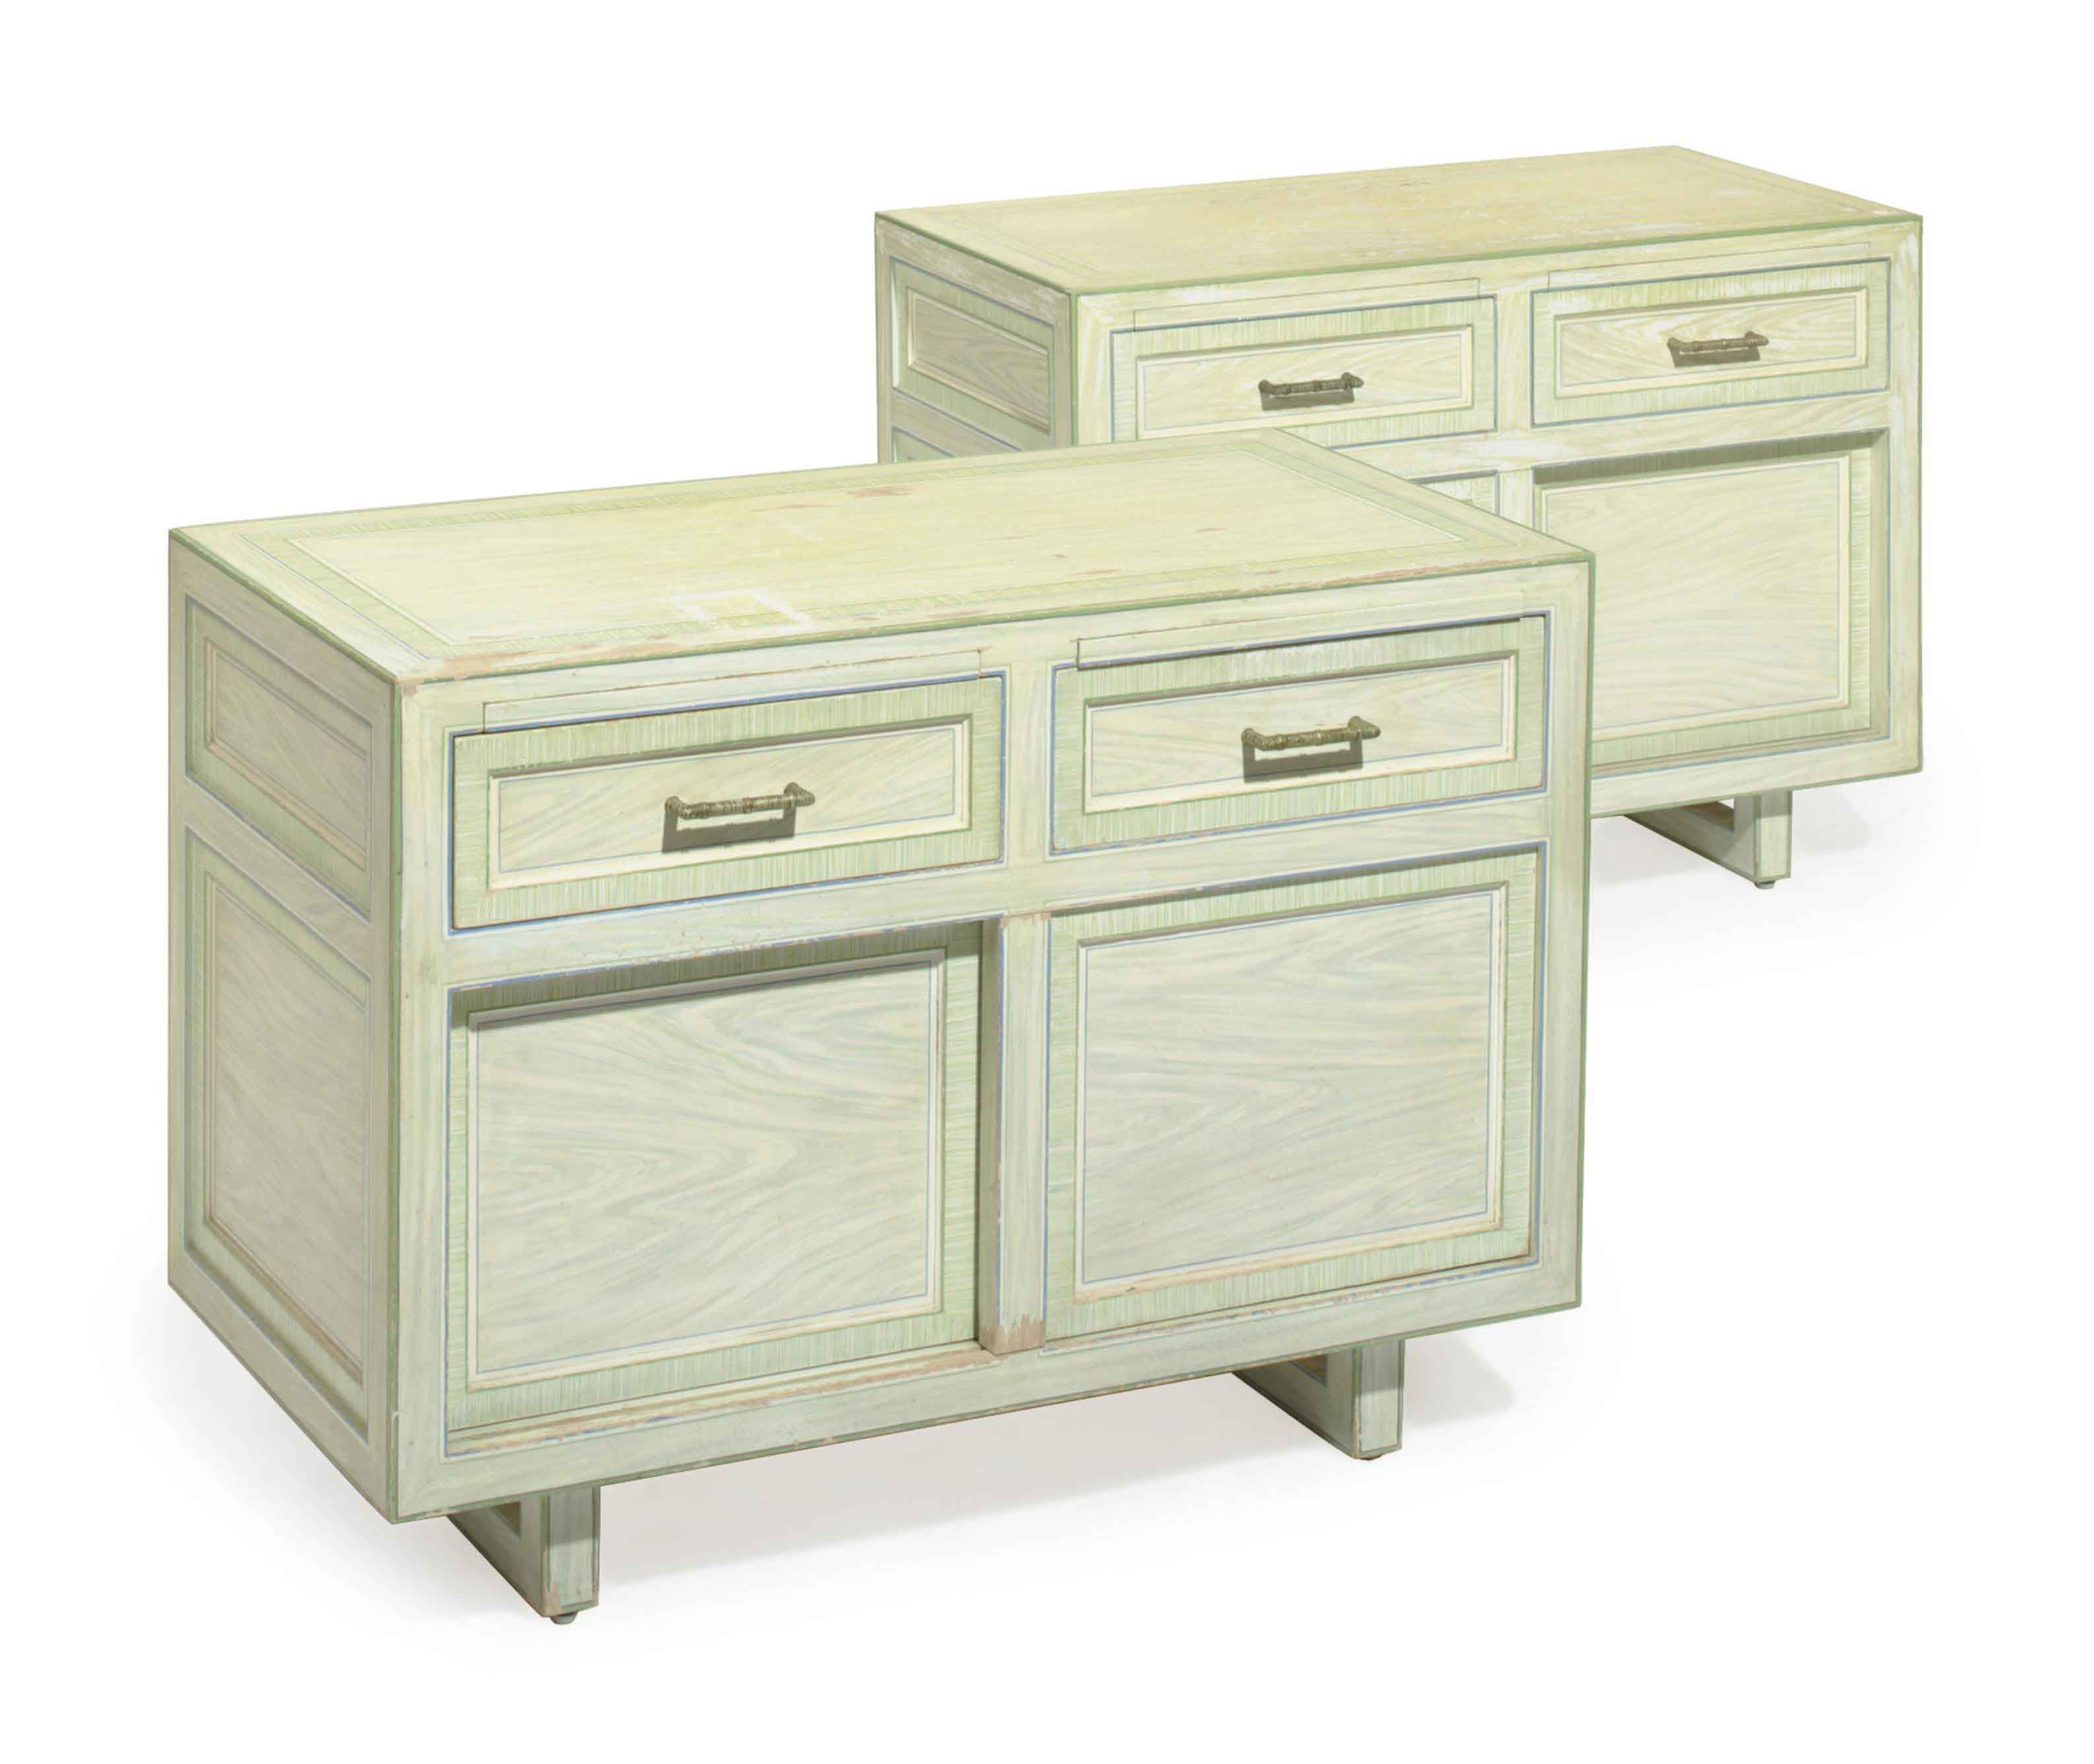 A PAIR OF GREEN GRAIN-PAINTED SIDE CABINETS,